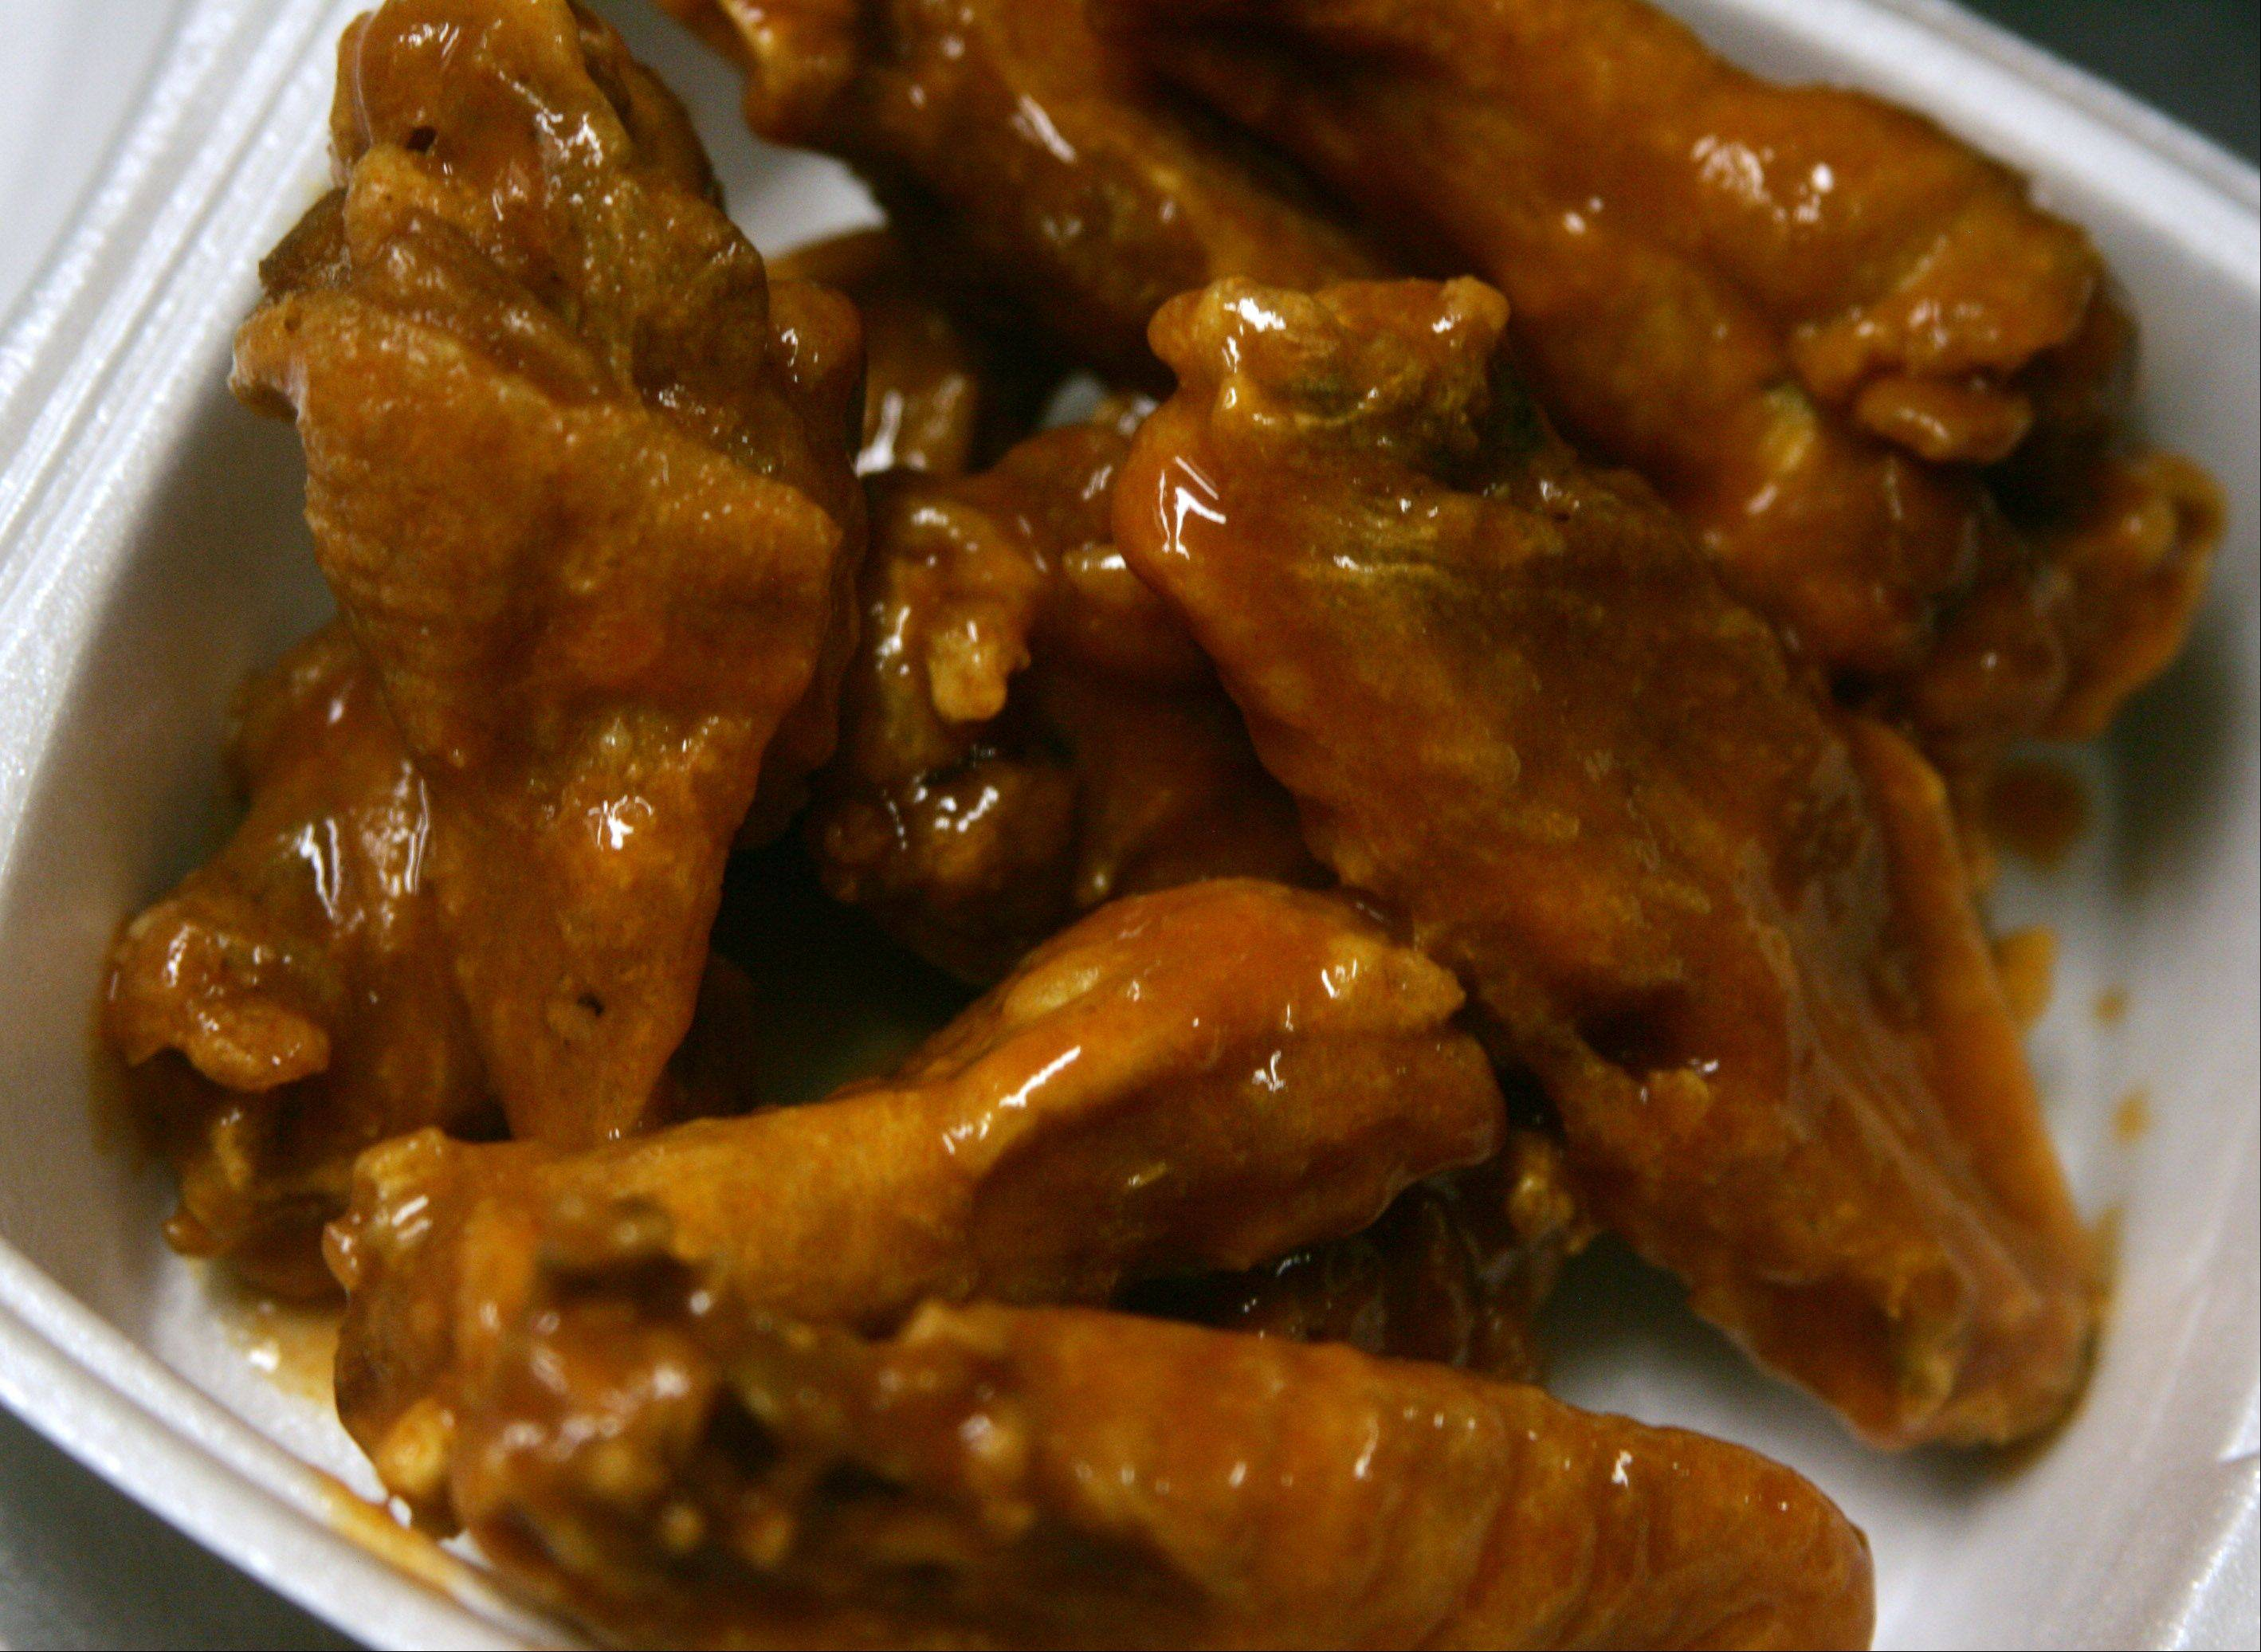 Hot wings from Franks for the Memories in Mundelein. For the second straight year, owner Jim Schultz Jr. has picked up a trophy at the National Buffalo Wing Festival. This time it was second place in the traditional hot category.